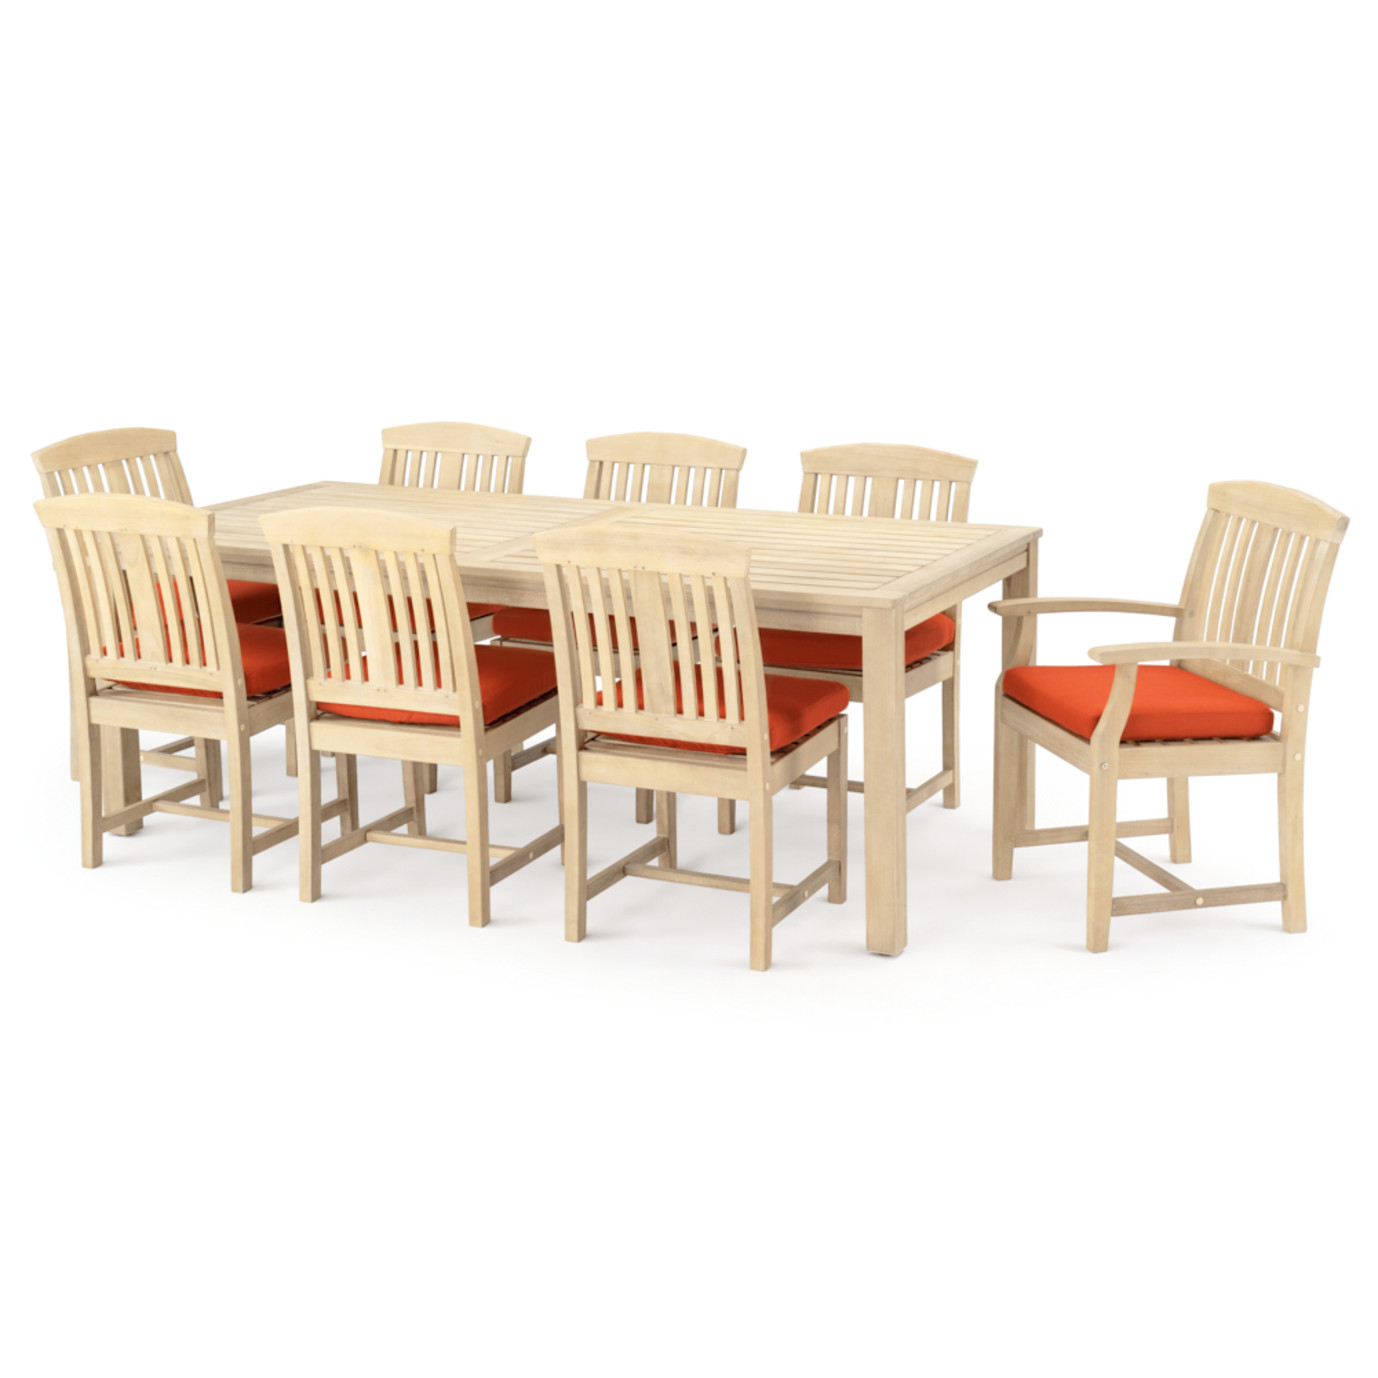 Kooper 9 Piece Outdoor Dining Set - Tikka Orange